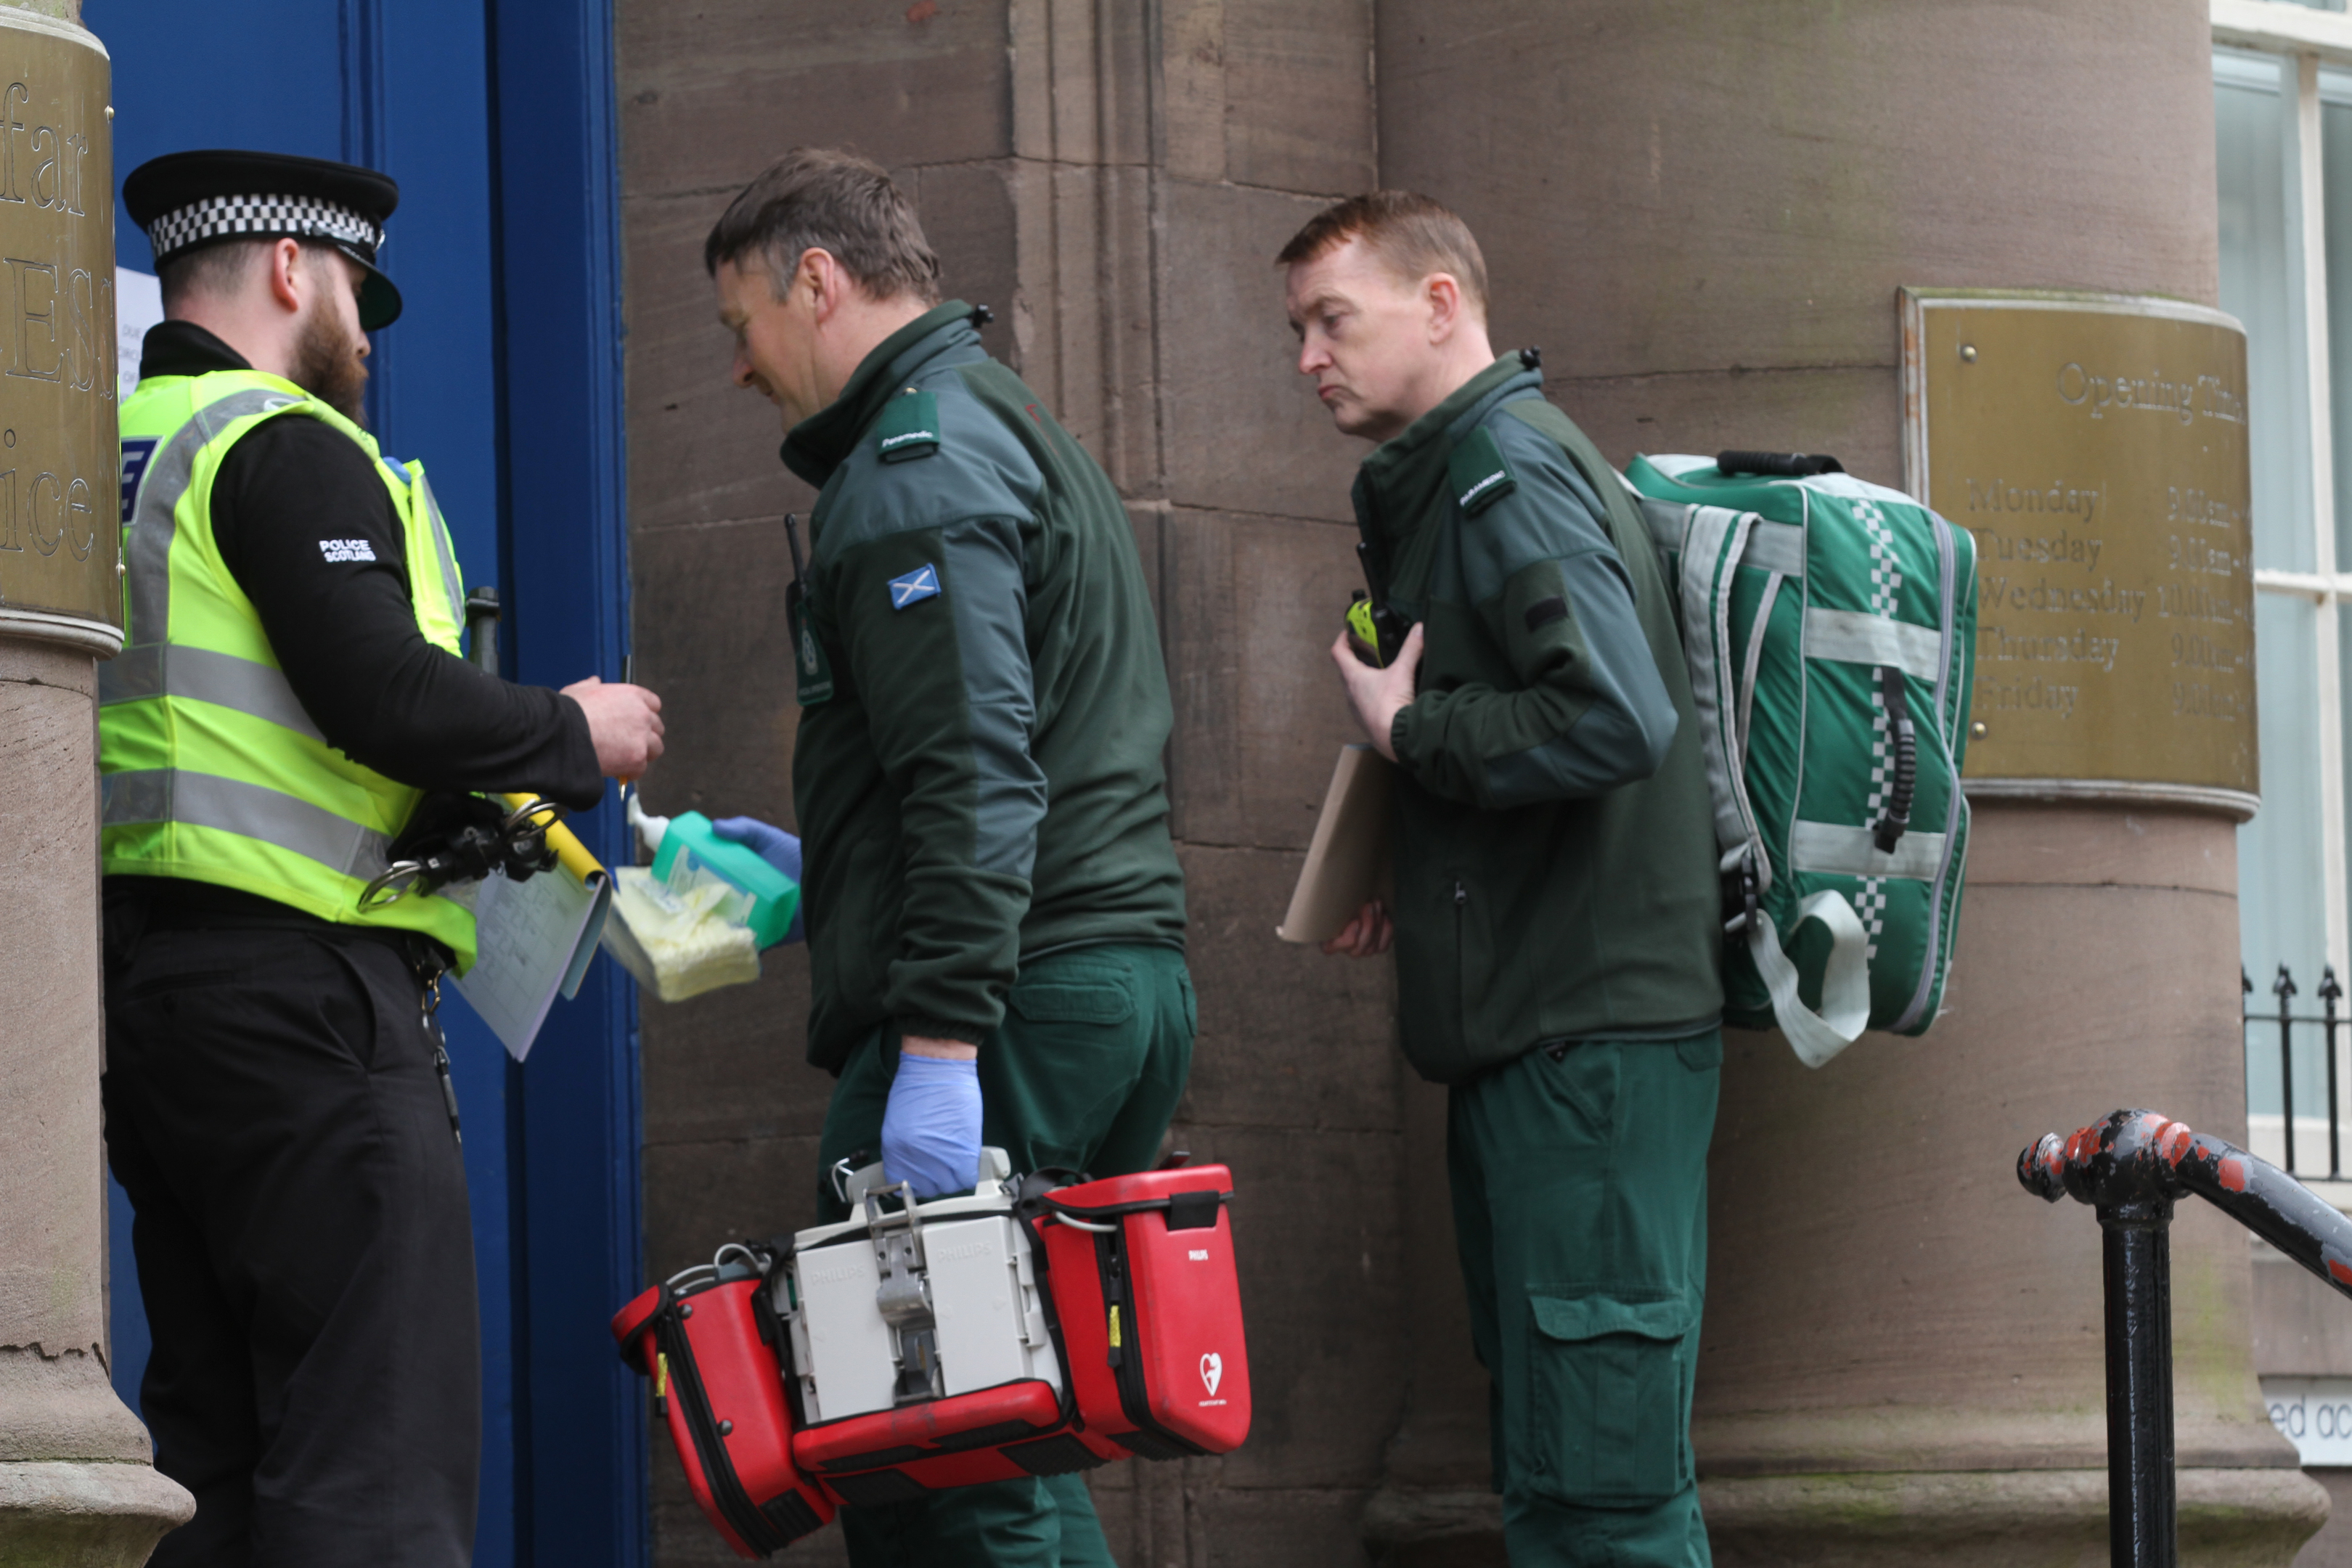 Paramedics entering the Municipal Buildings in Forfar on Wednesday afternoon.